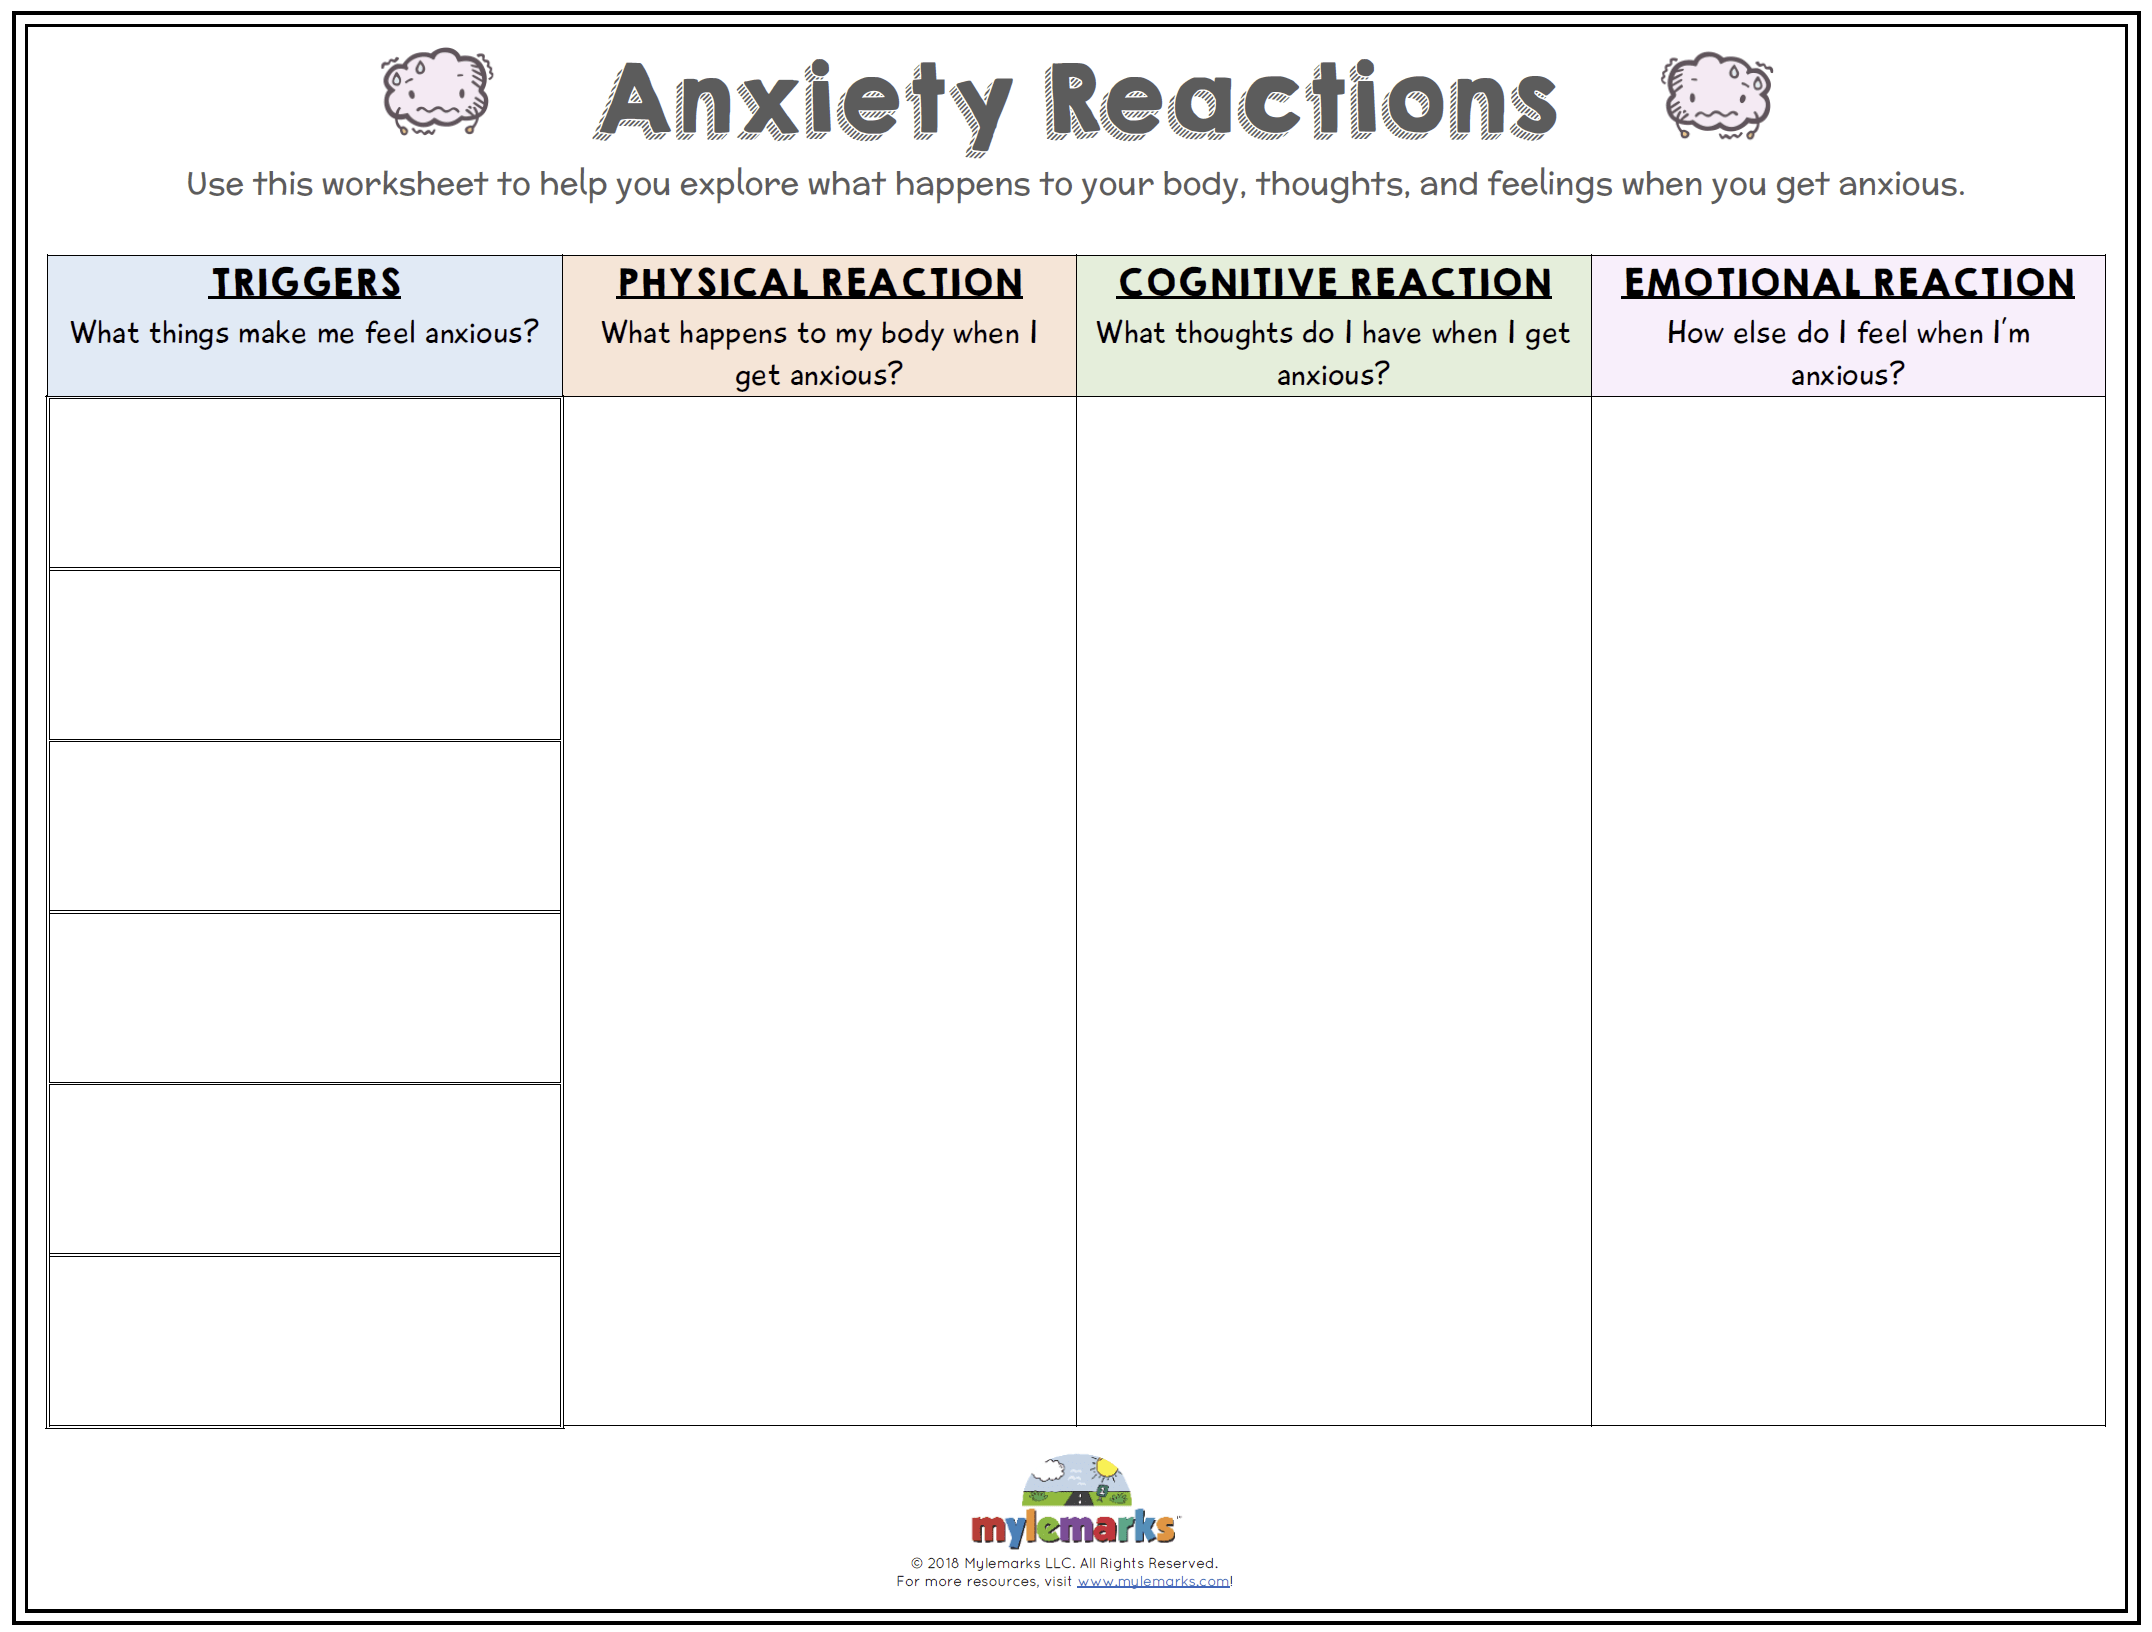 Anxiety Reactions F